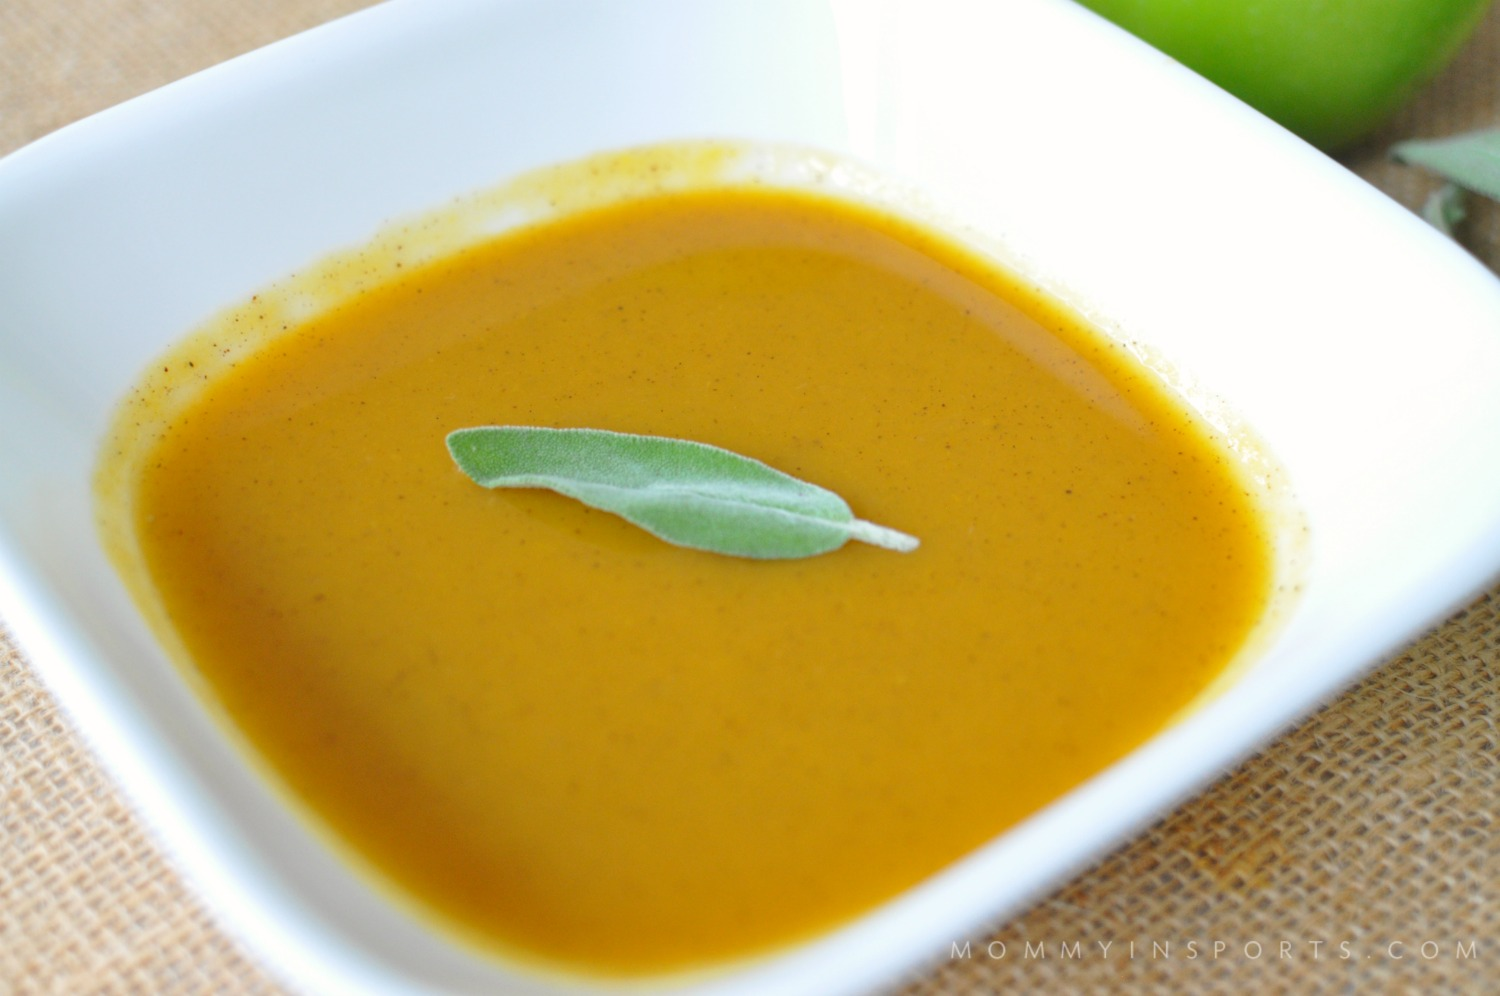 Looking for a dairy-free & paleo butternut squash soup that silky, creamy, and naturally sweet? You won't be disappointed in this perfect paleo butternut squash soup recipe!